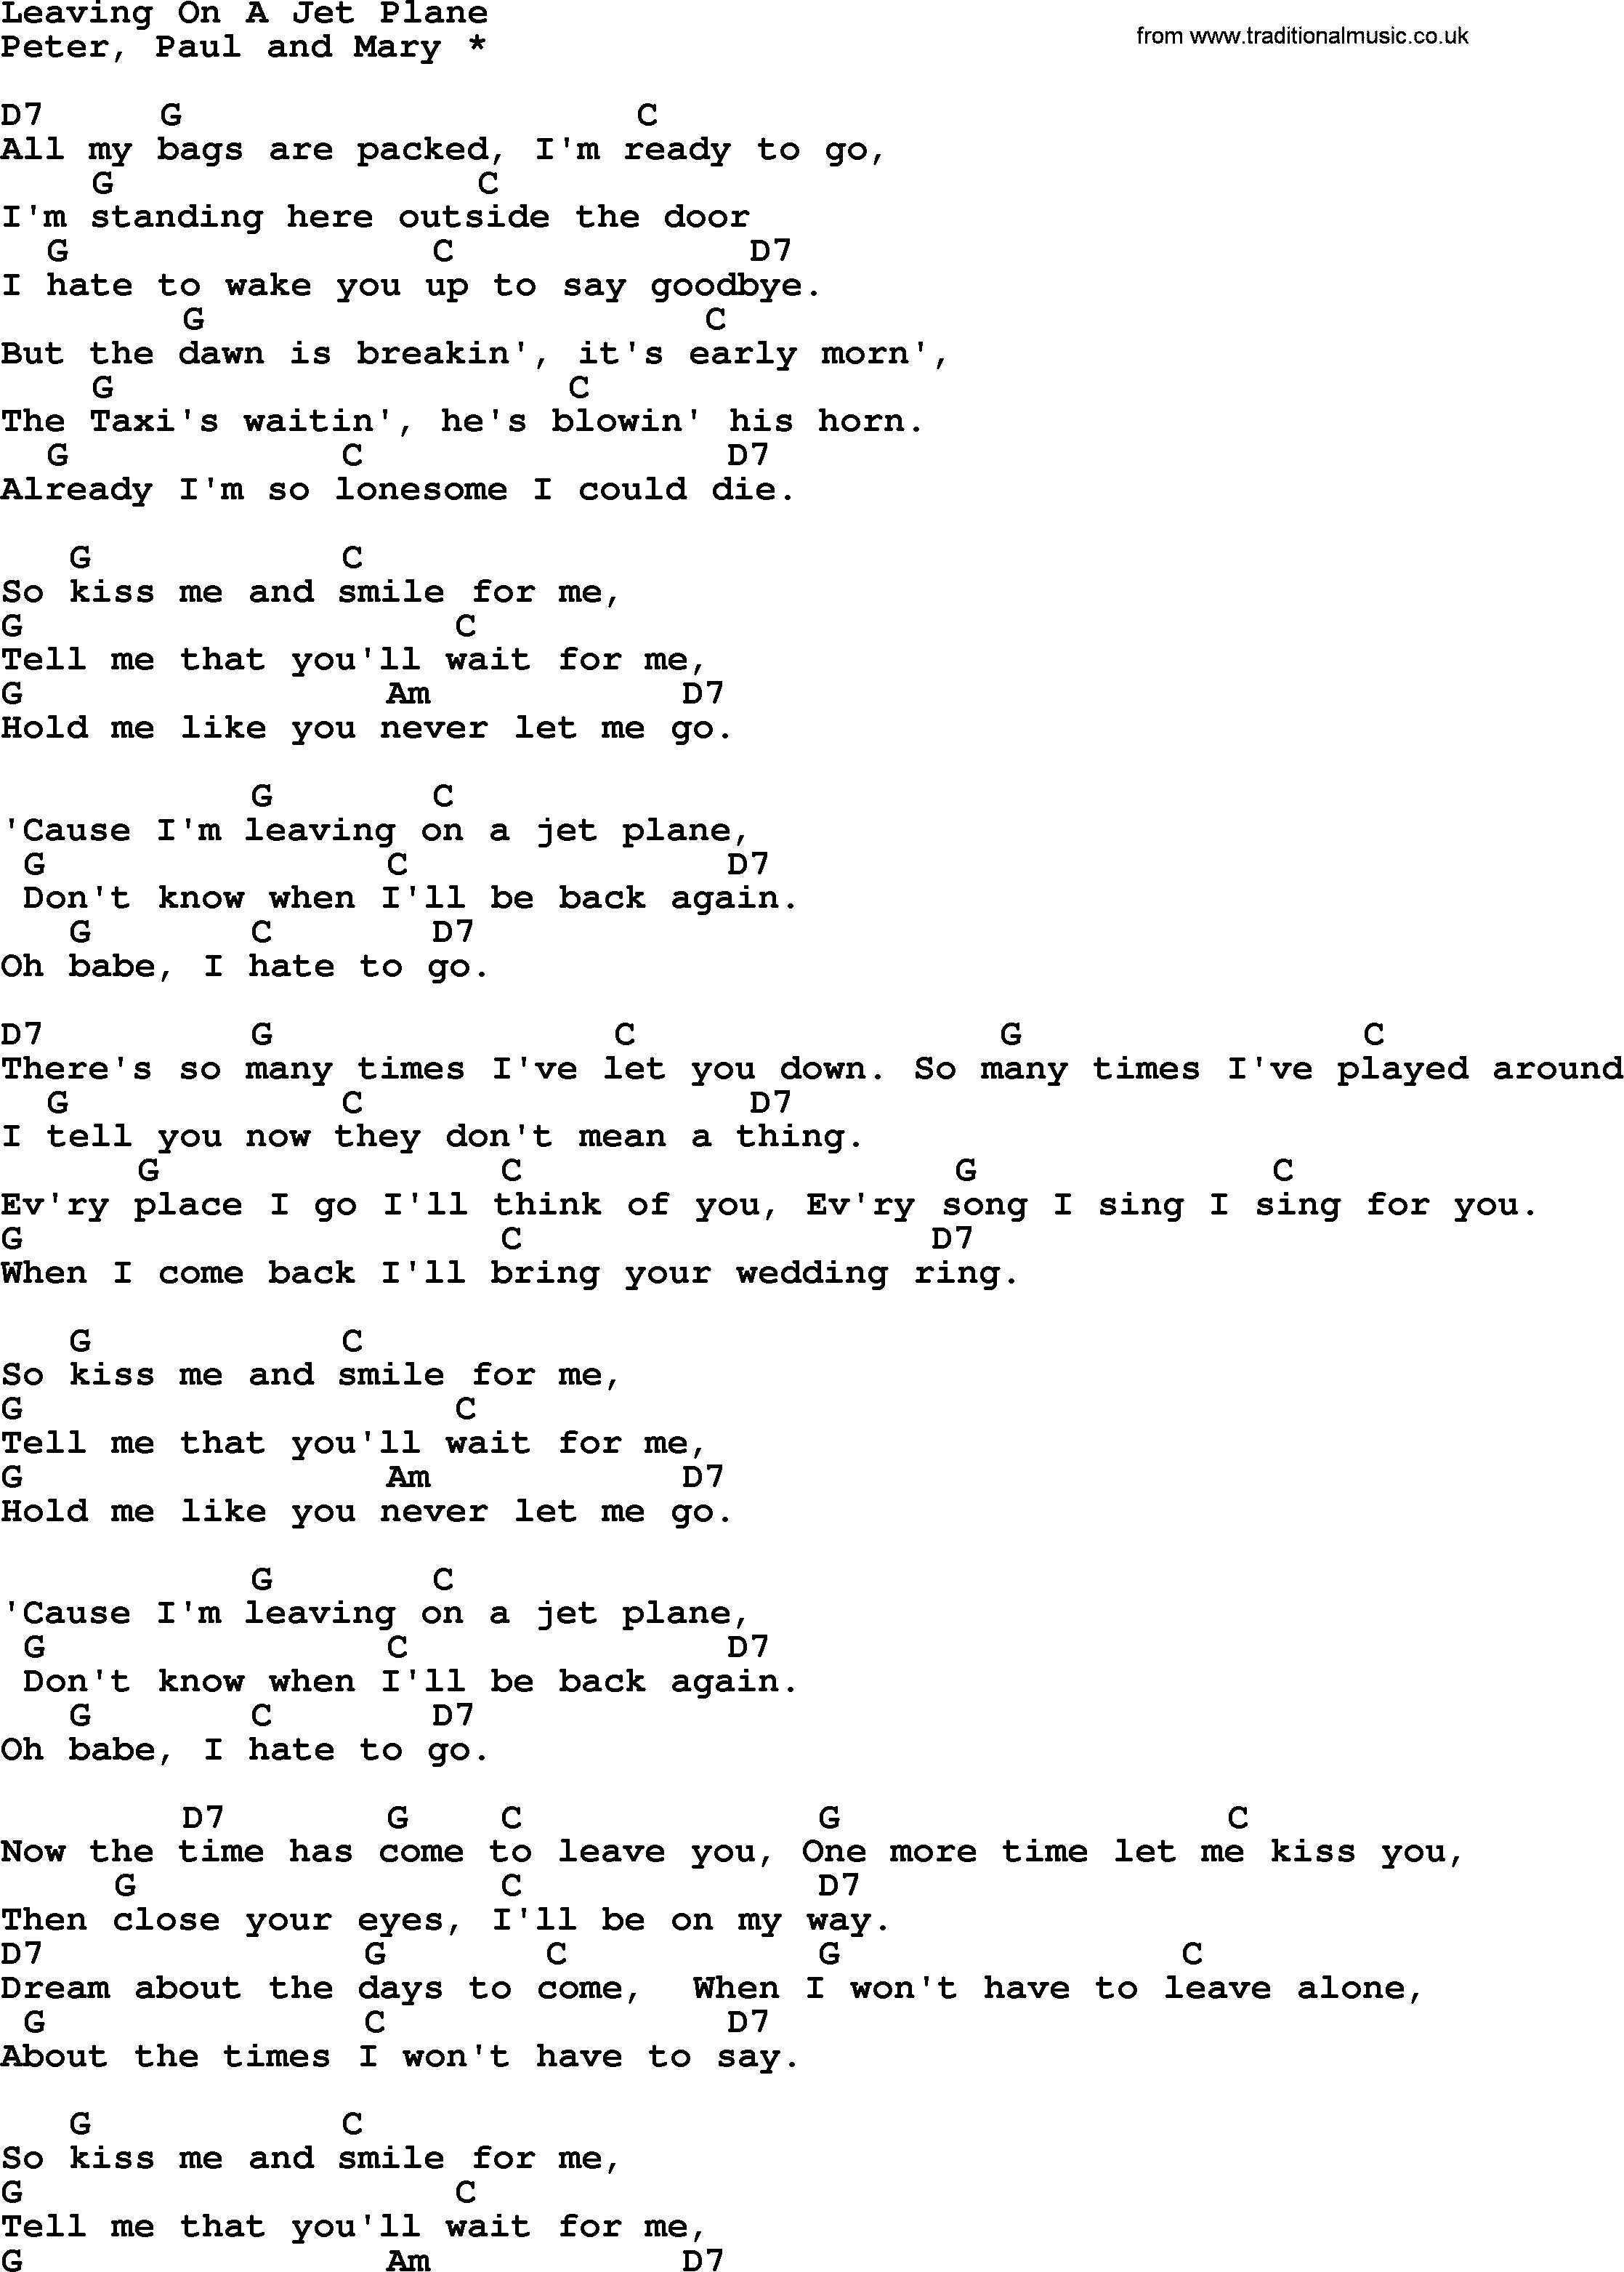 Peter paul and mary song leaving on a jet plane ver2 lyrics and peter paul and mary song leaving on a jet plane ver2 lyrics and chords hexwebz Gallery